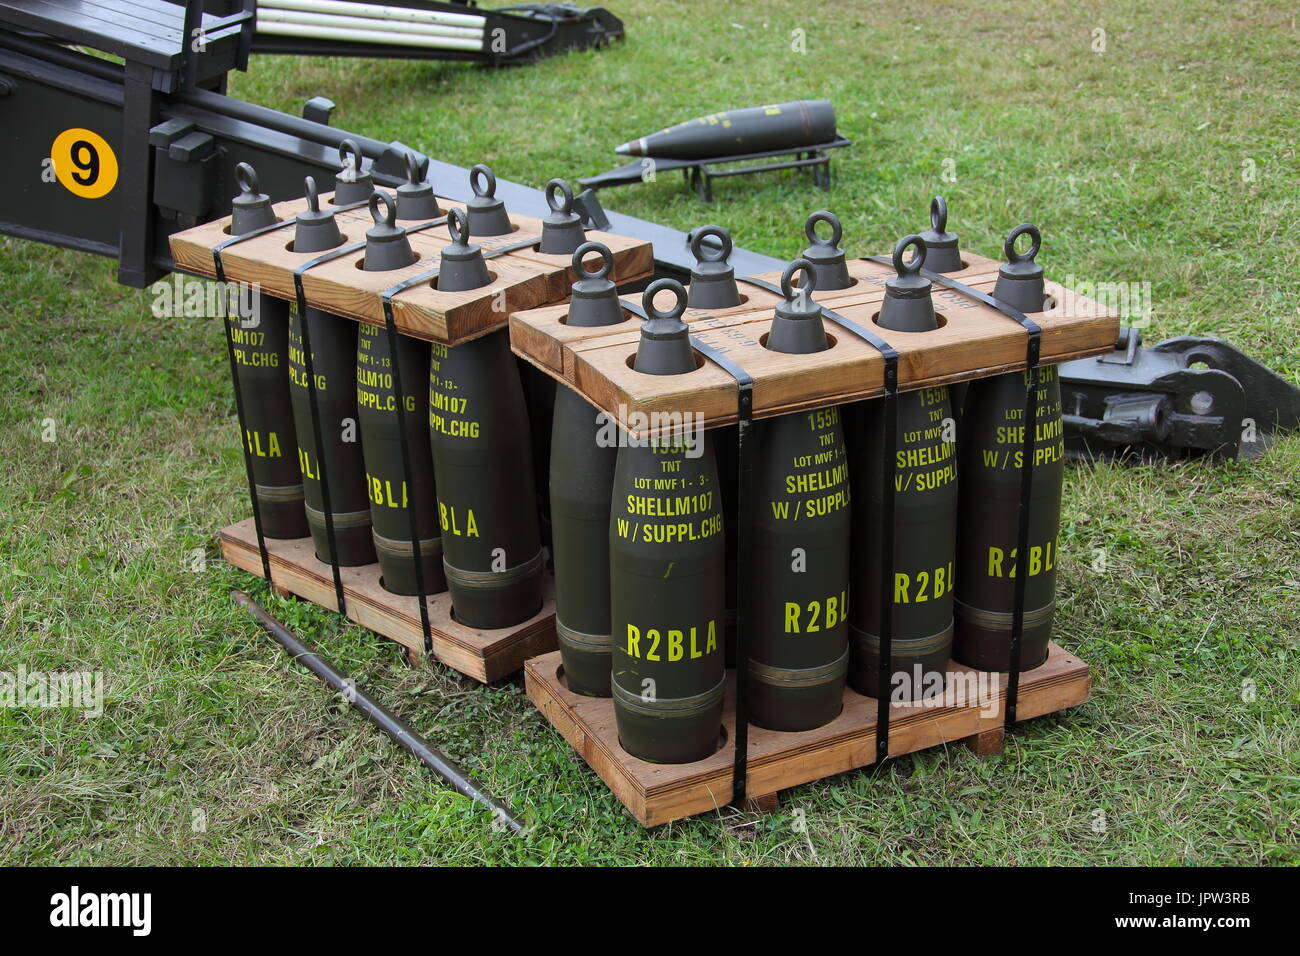 At the War and Peace show at Beltring in Kent a dispaly of 155mm High explosive Howitzer ammunition in a pallet for easy transportation. - Stock Image